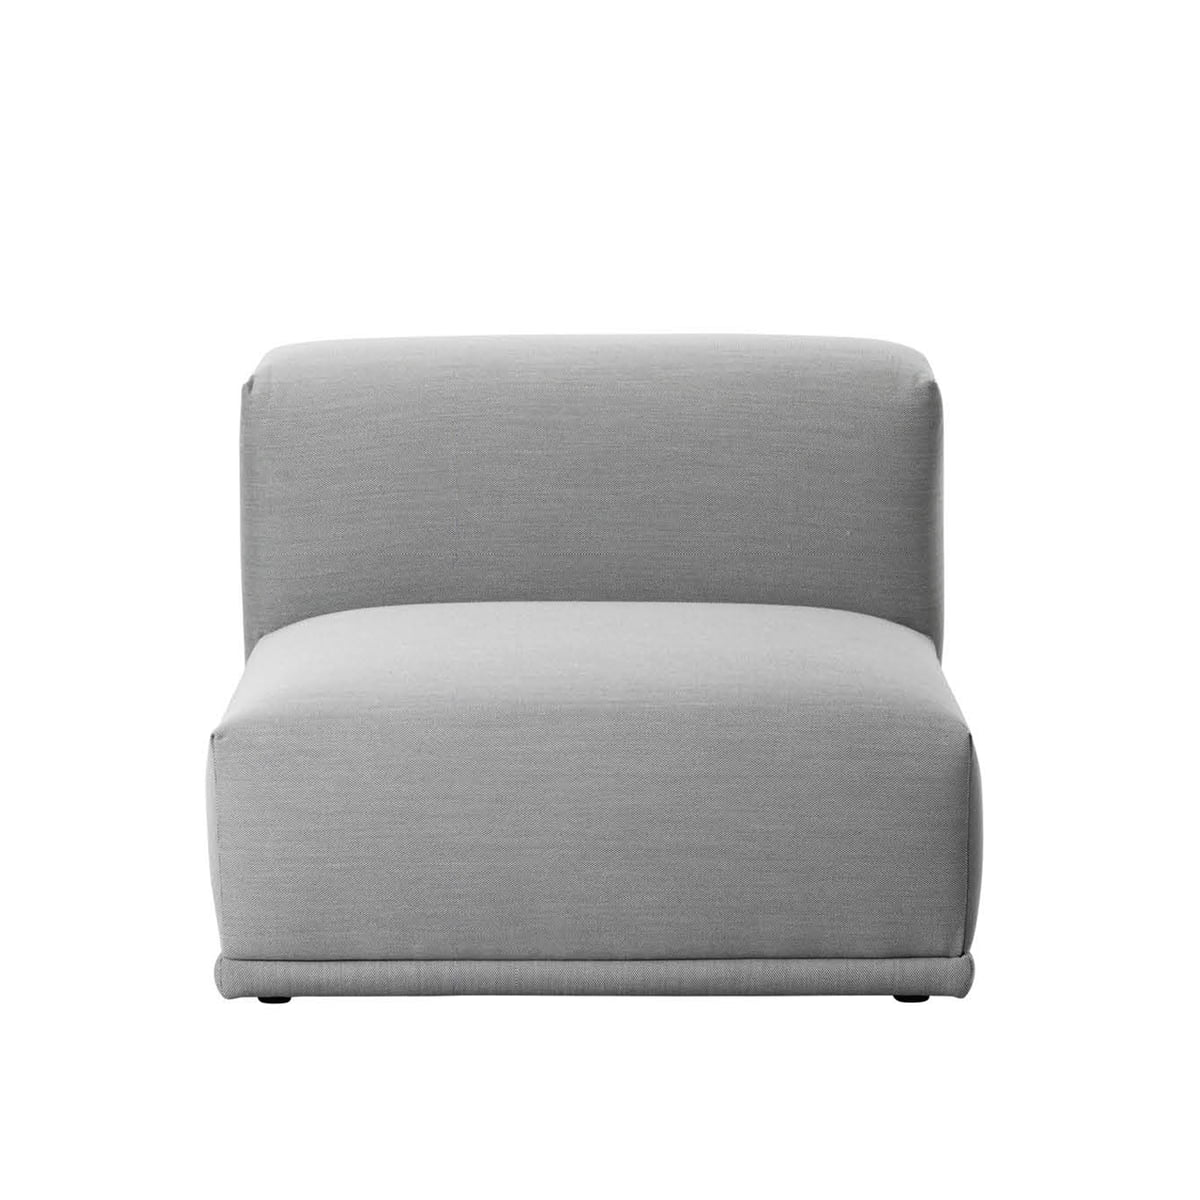 Connect sofa d modul